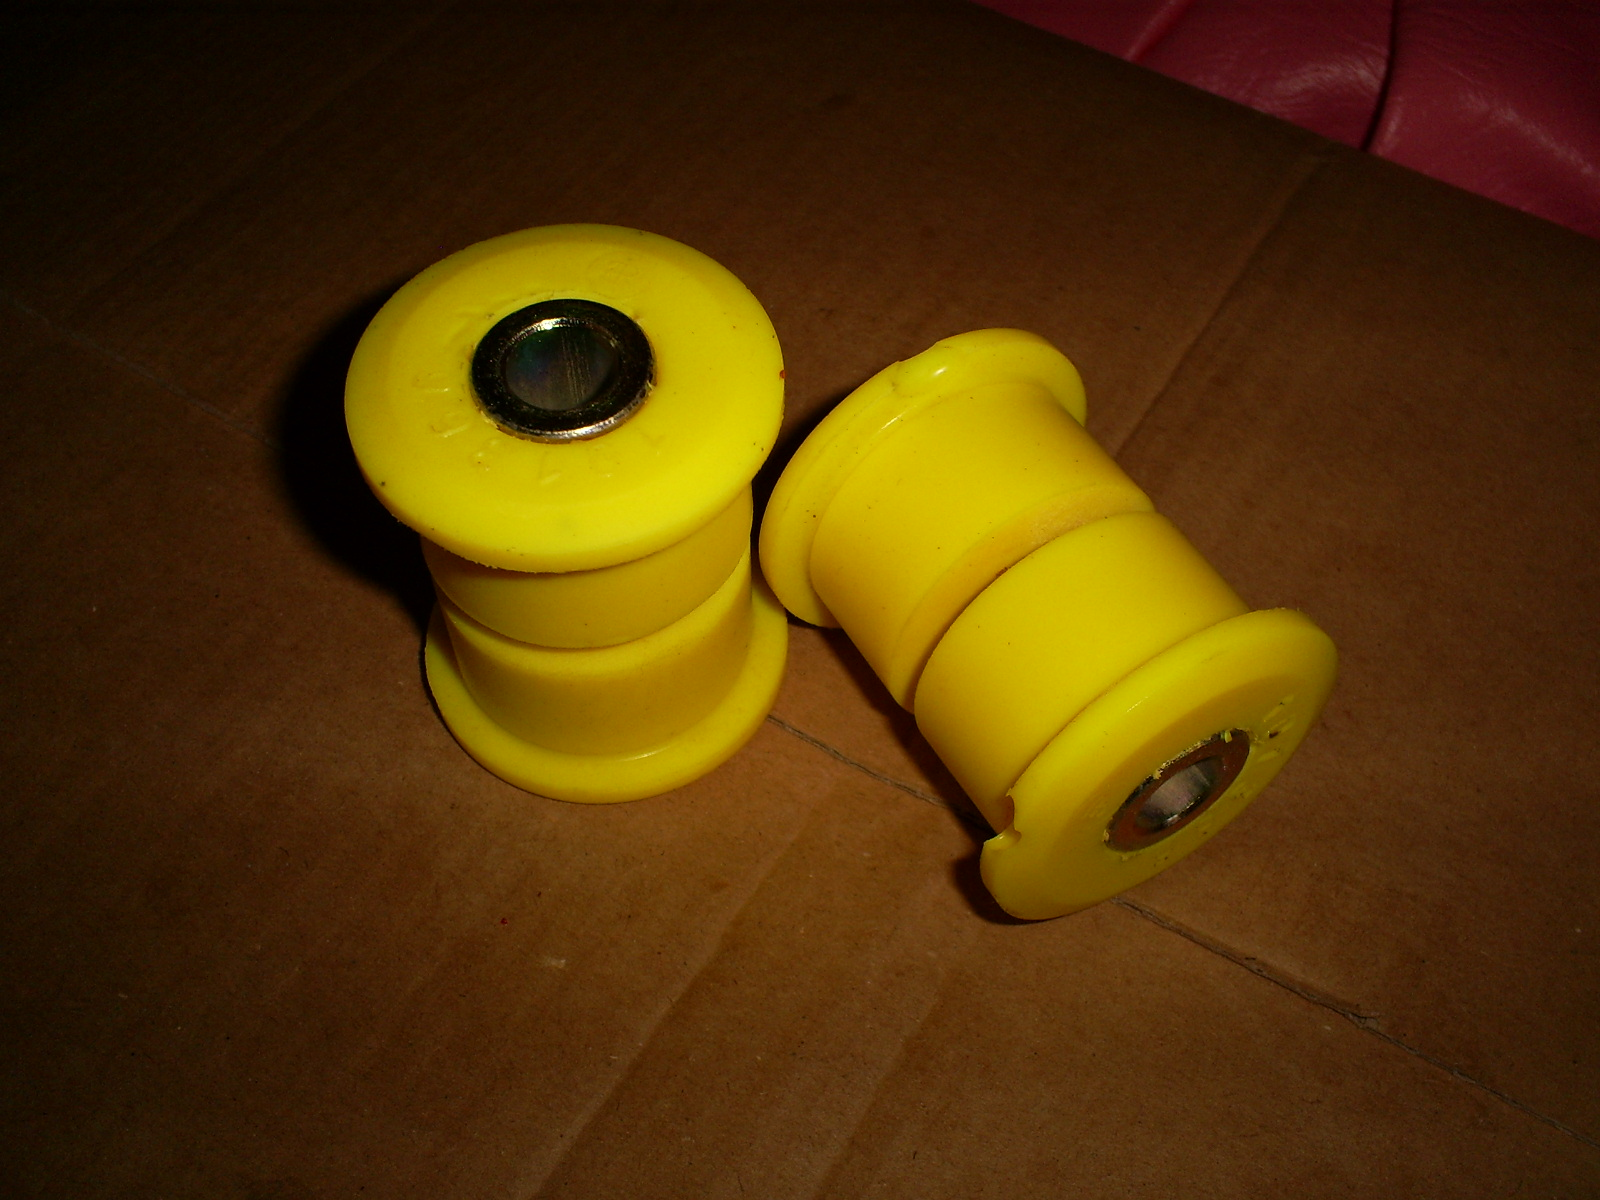 http://3.bp.blogspot.com/-zYdOZX3opJg/T1aBTzxFtnI/AAAAAAAAIOM/68aDtP7pe4k/s1600/rear_upright_bushes.JPG